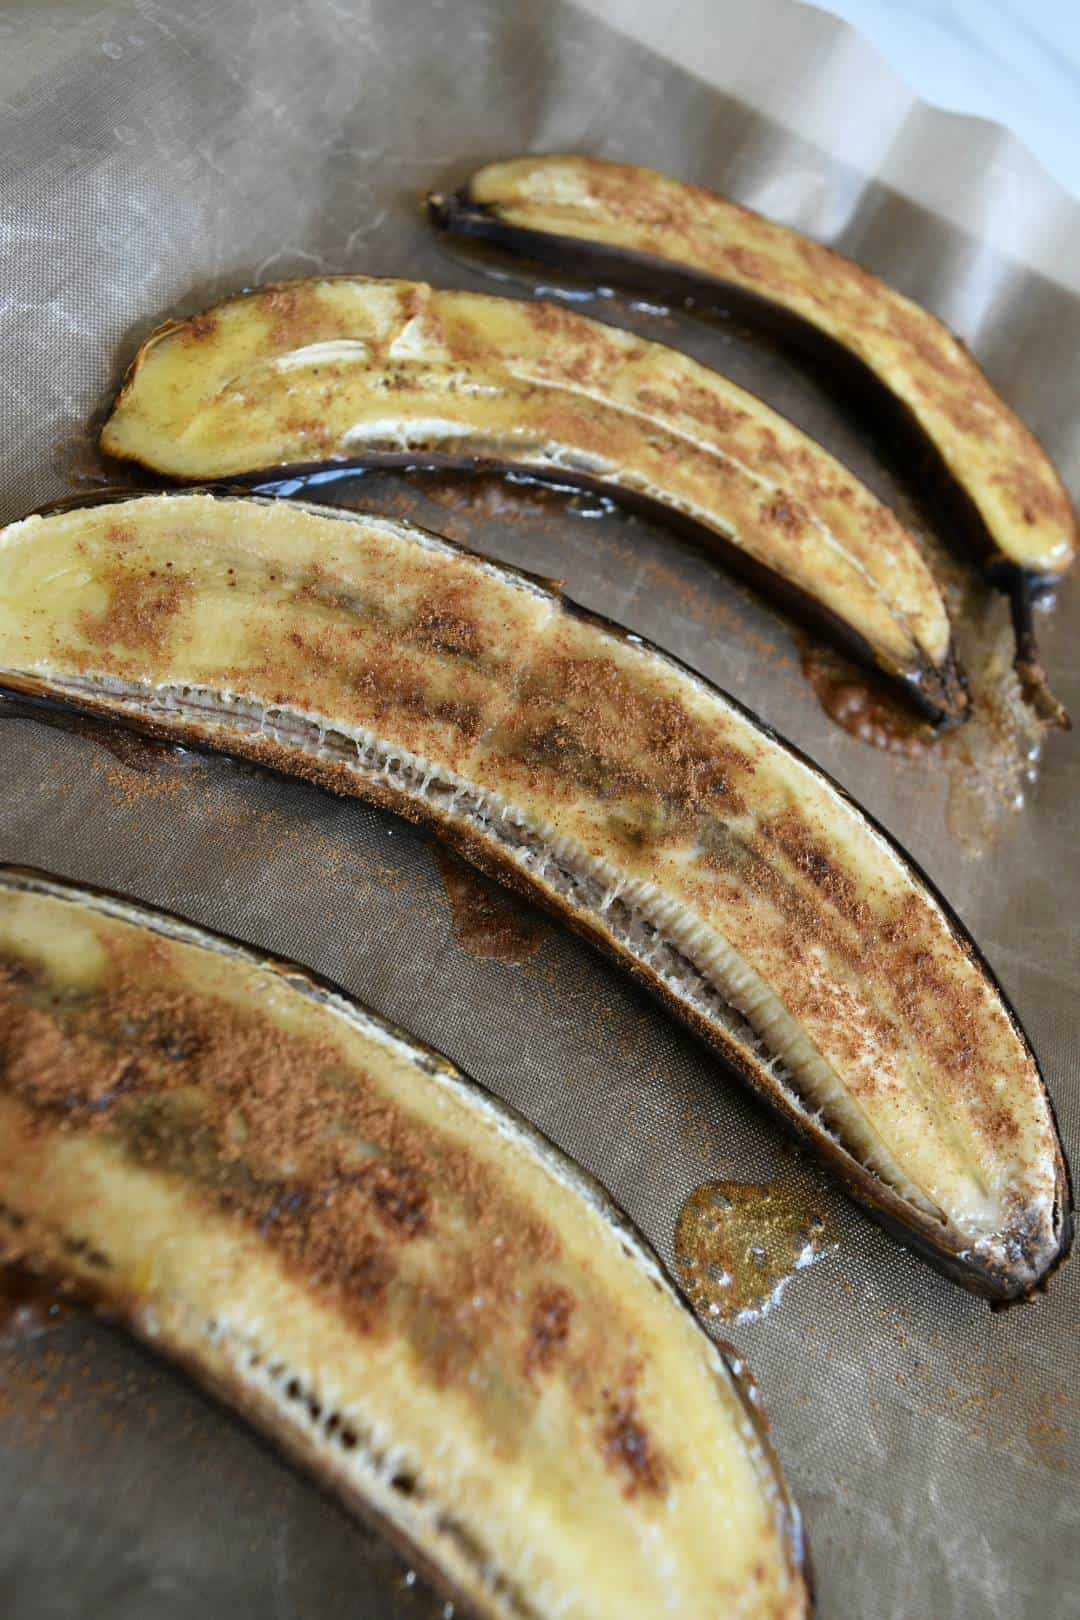 Baked bananas on a baking tray.